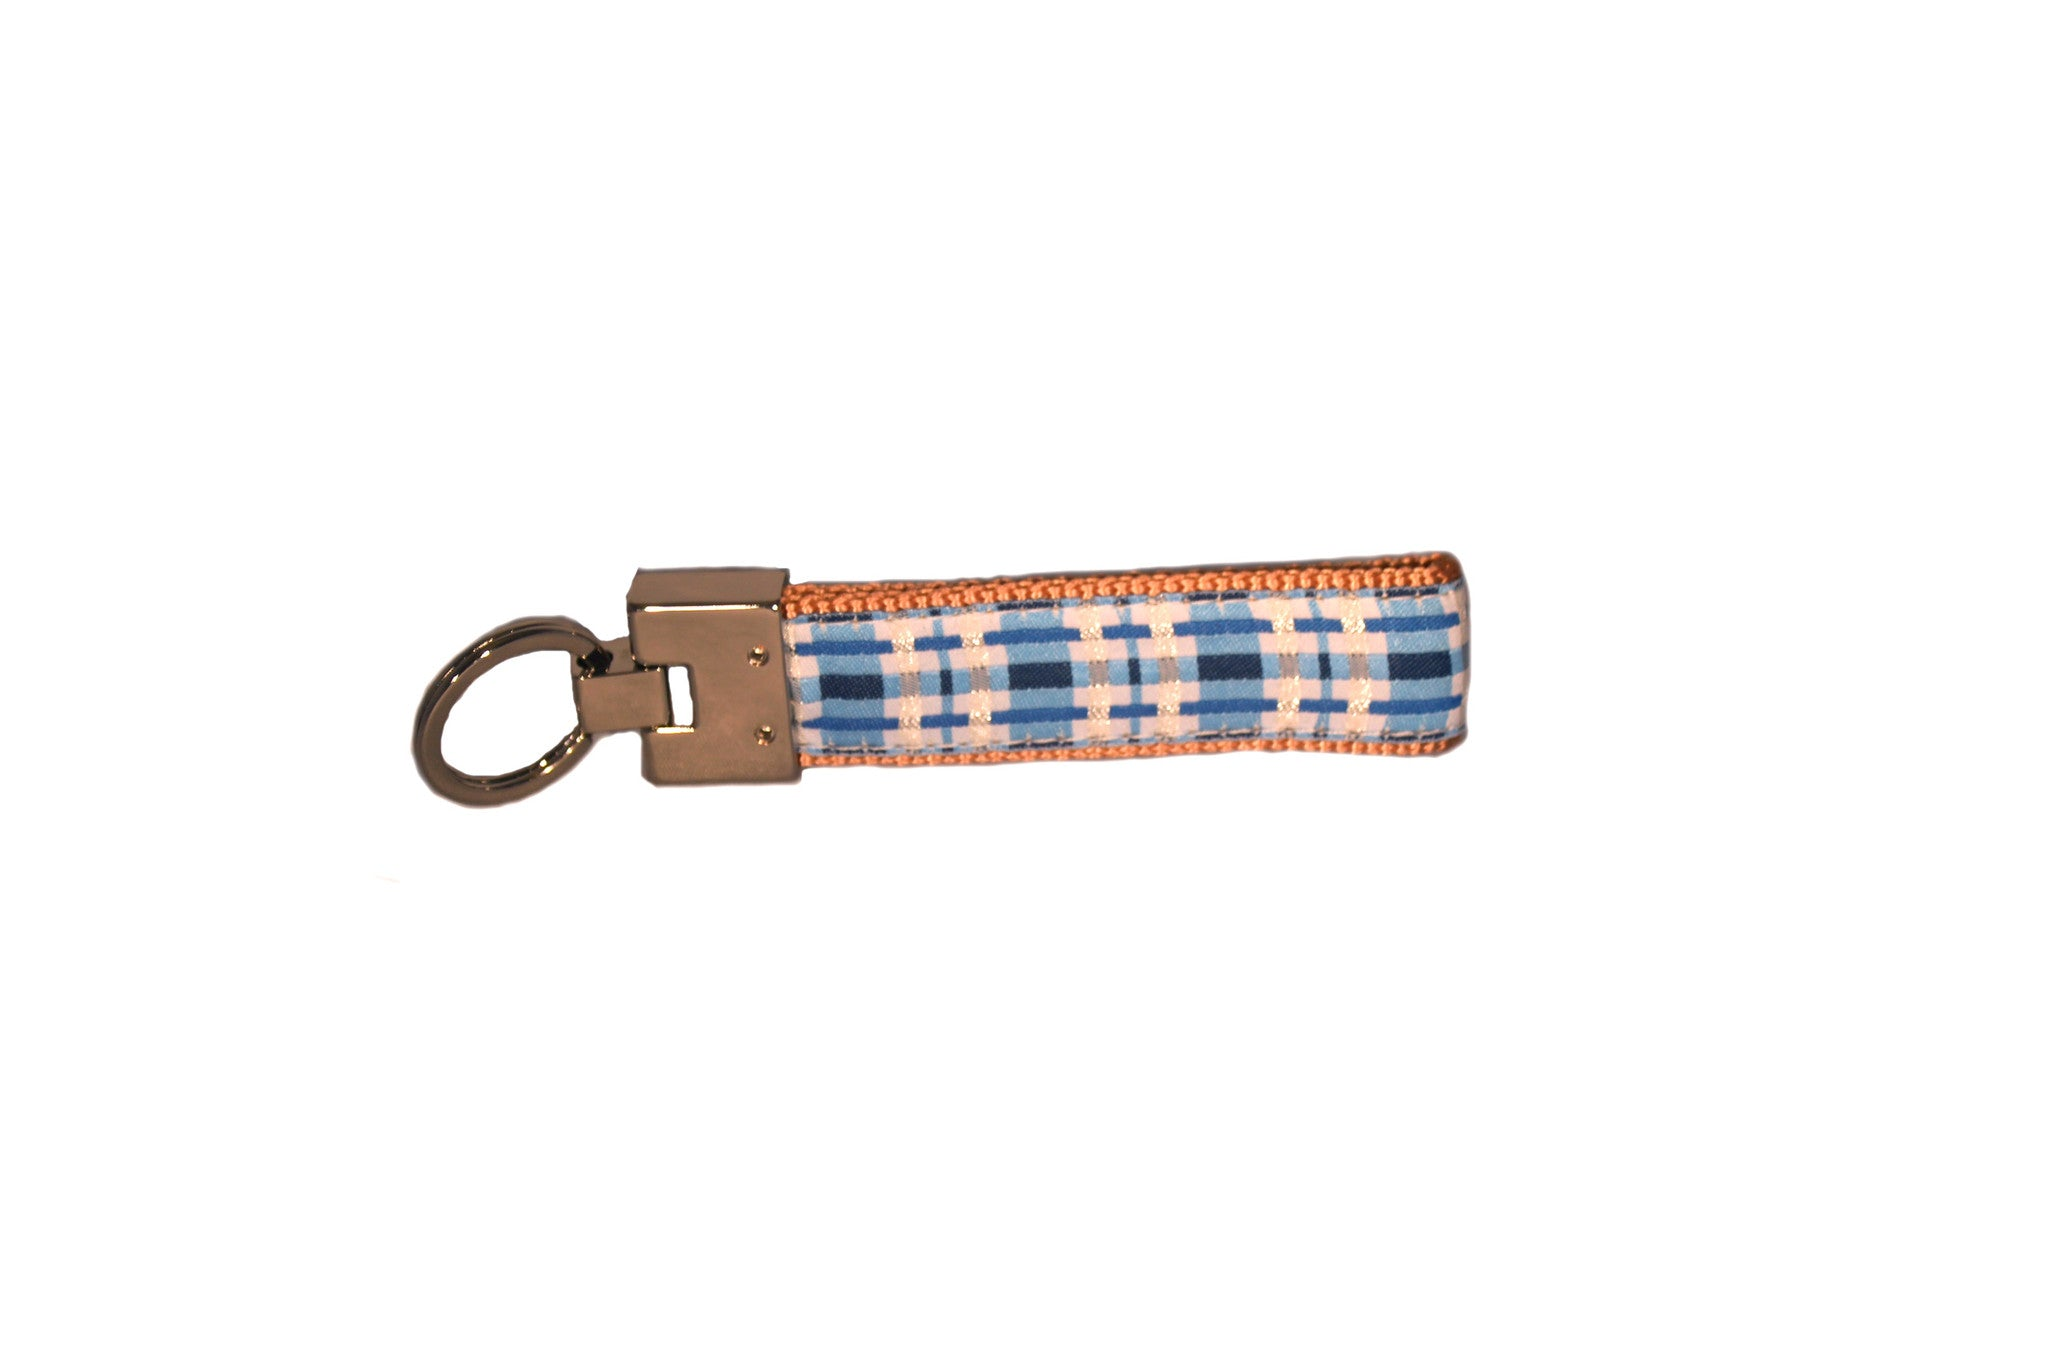 Charles Eliot Subscription - Collar, Leash & Key Chain